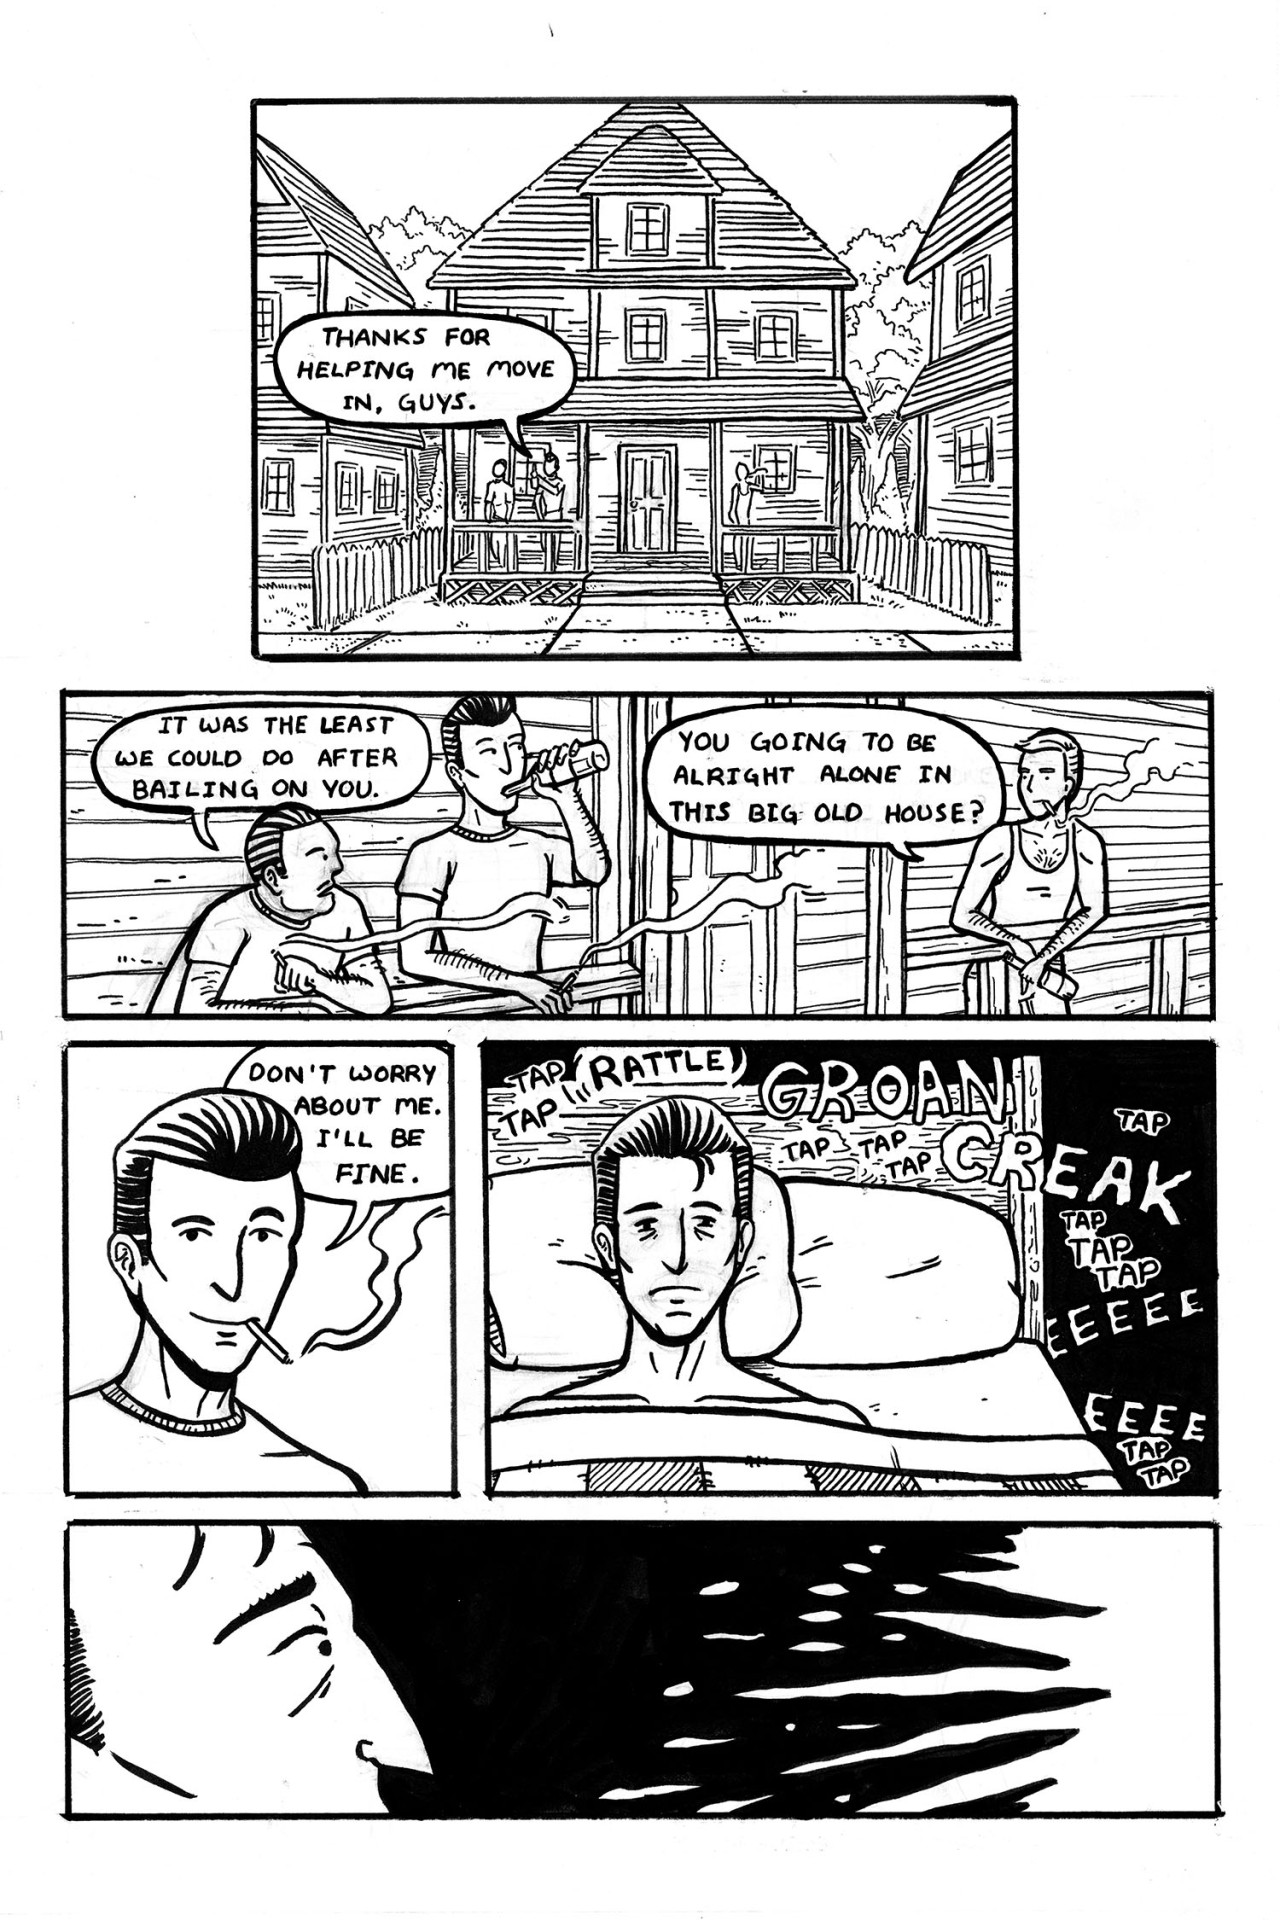 annimate:  chasingcomics:  The Man Who Lives Alone My Intro to Comics final about ghosts and love.  CHASE CHASE CHASE IS AWESOME